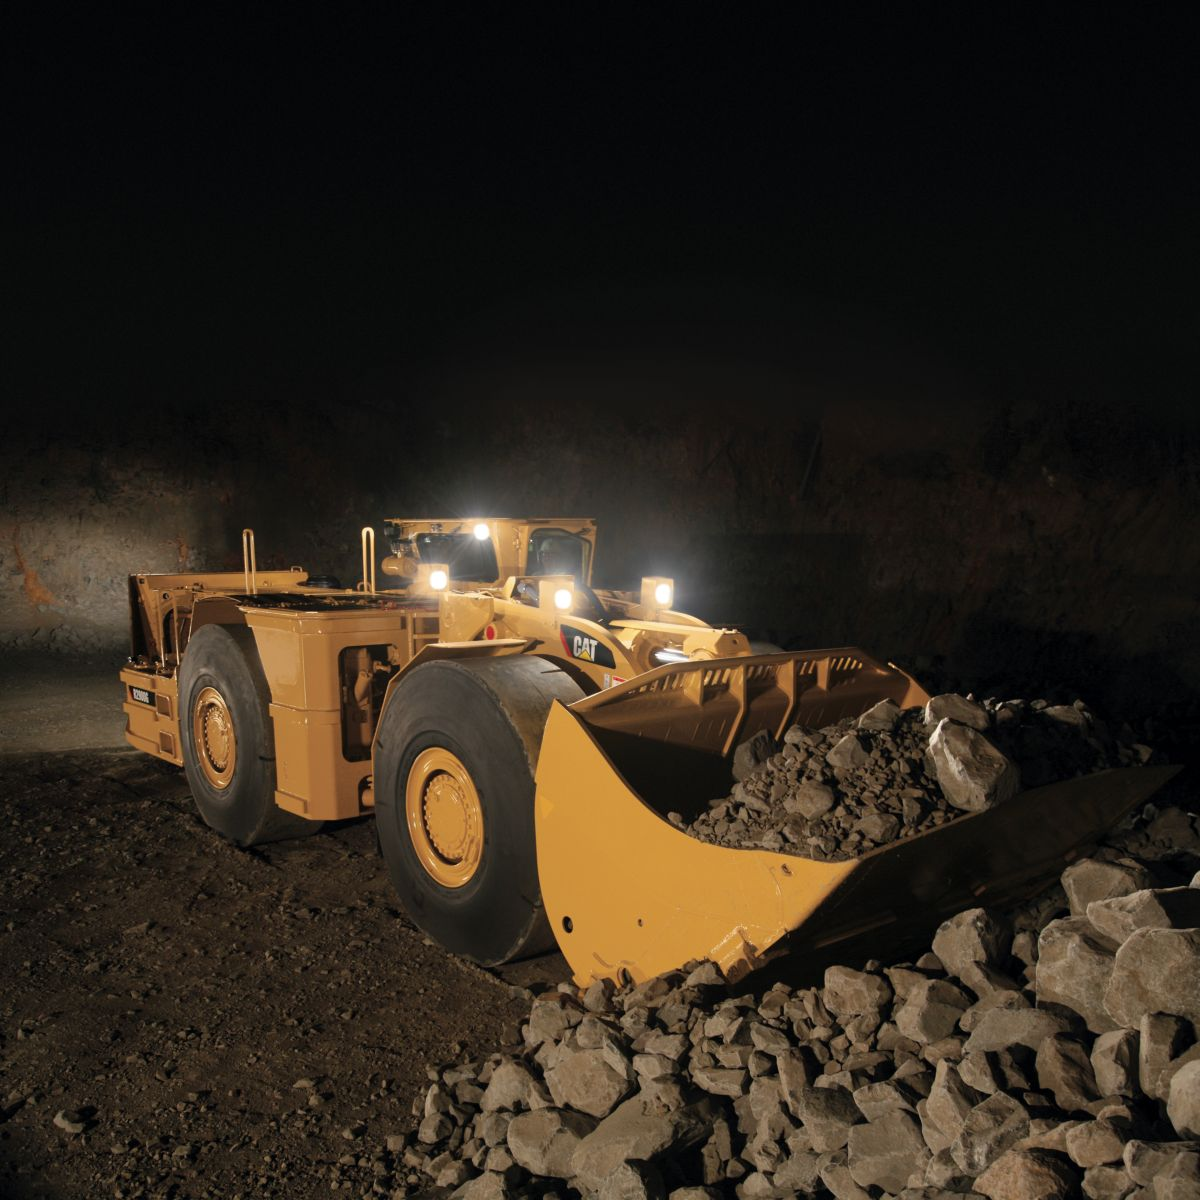 product-R2900G Underground Mining Load-Haul-Dump (LHD) Loader